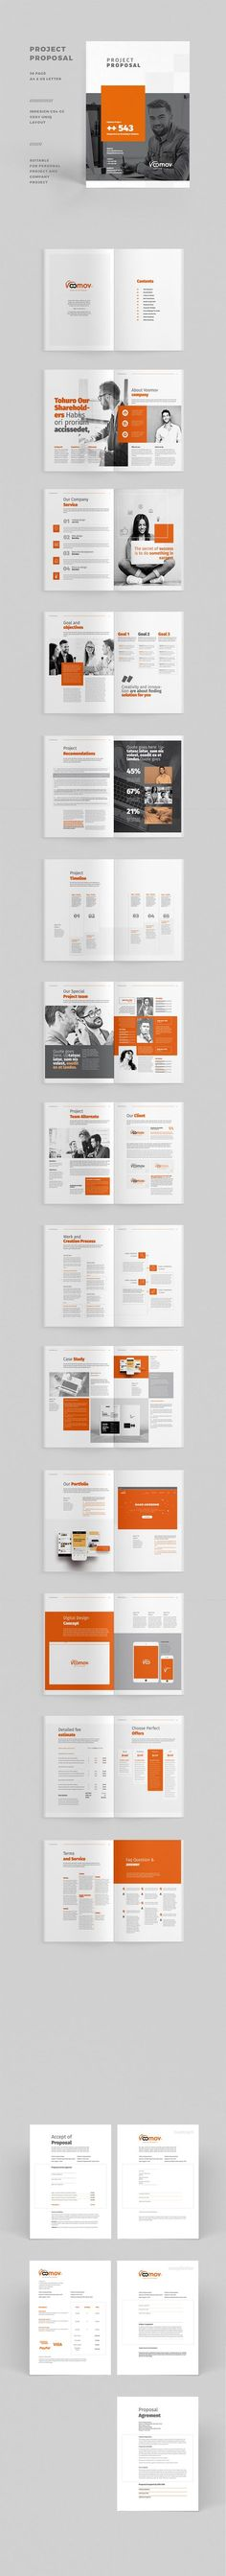 grafilia brand, brief, brochure design, business, business proposal, clean, corporate, creative, design, identity, indesign, indesign templates, informational, Kampretco, light, minimal, modern, professional, report, trend, trendy, us letter, visual